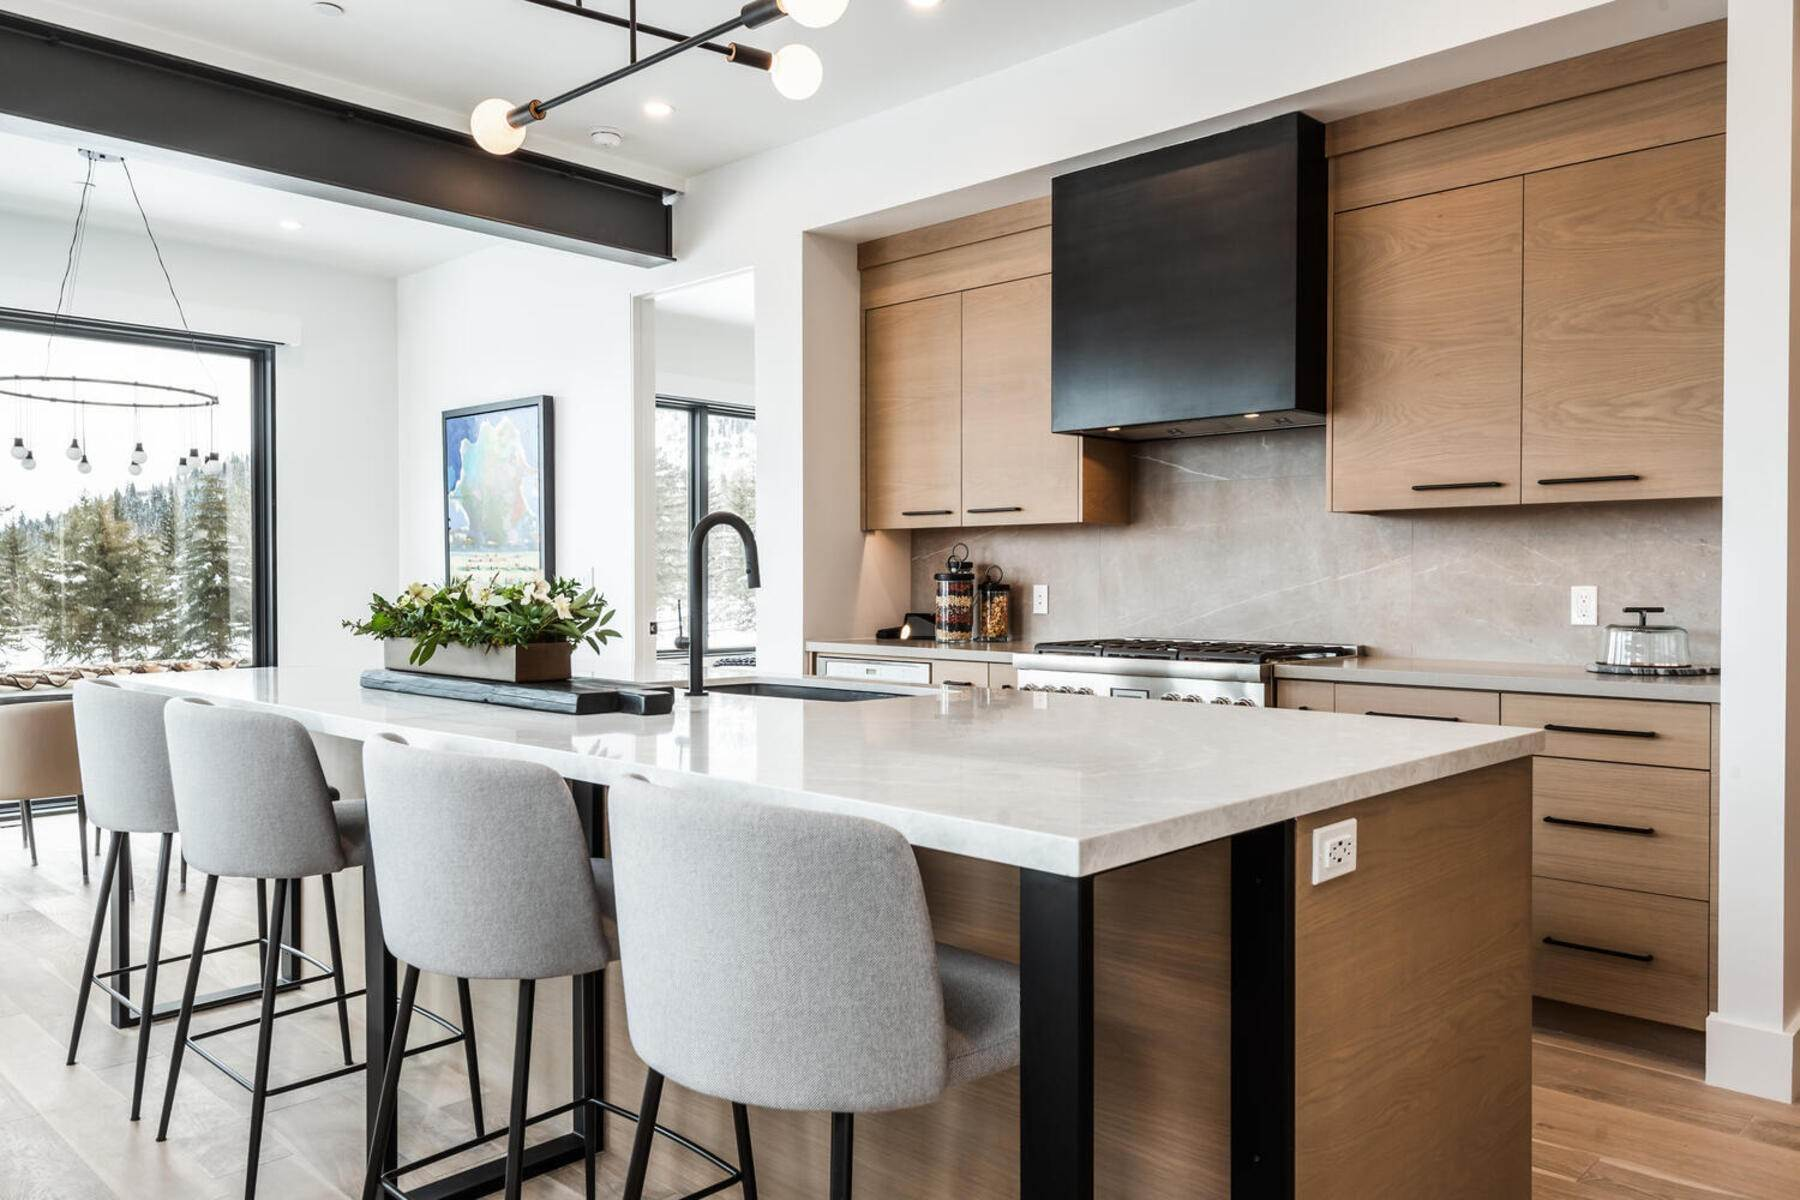 11. townhouses for Sale at Ski-In Town Homes in Canyons Village 3472 Ridgeline Drive Park City, Utah 84098 United States